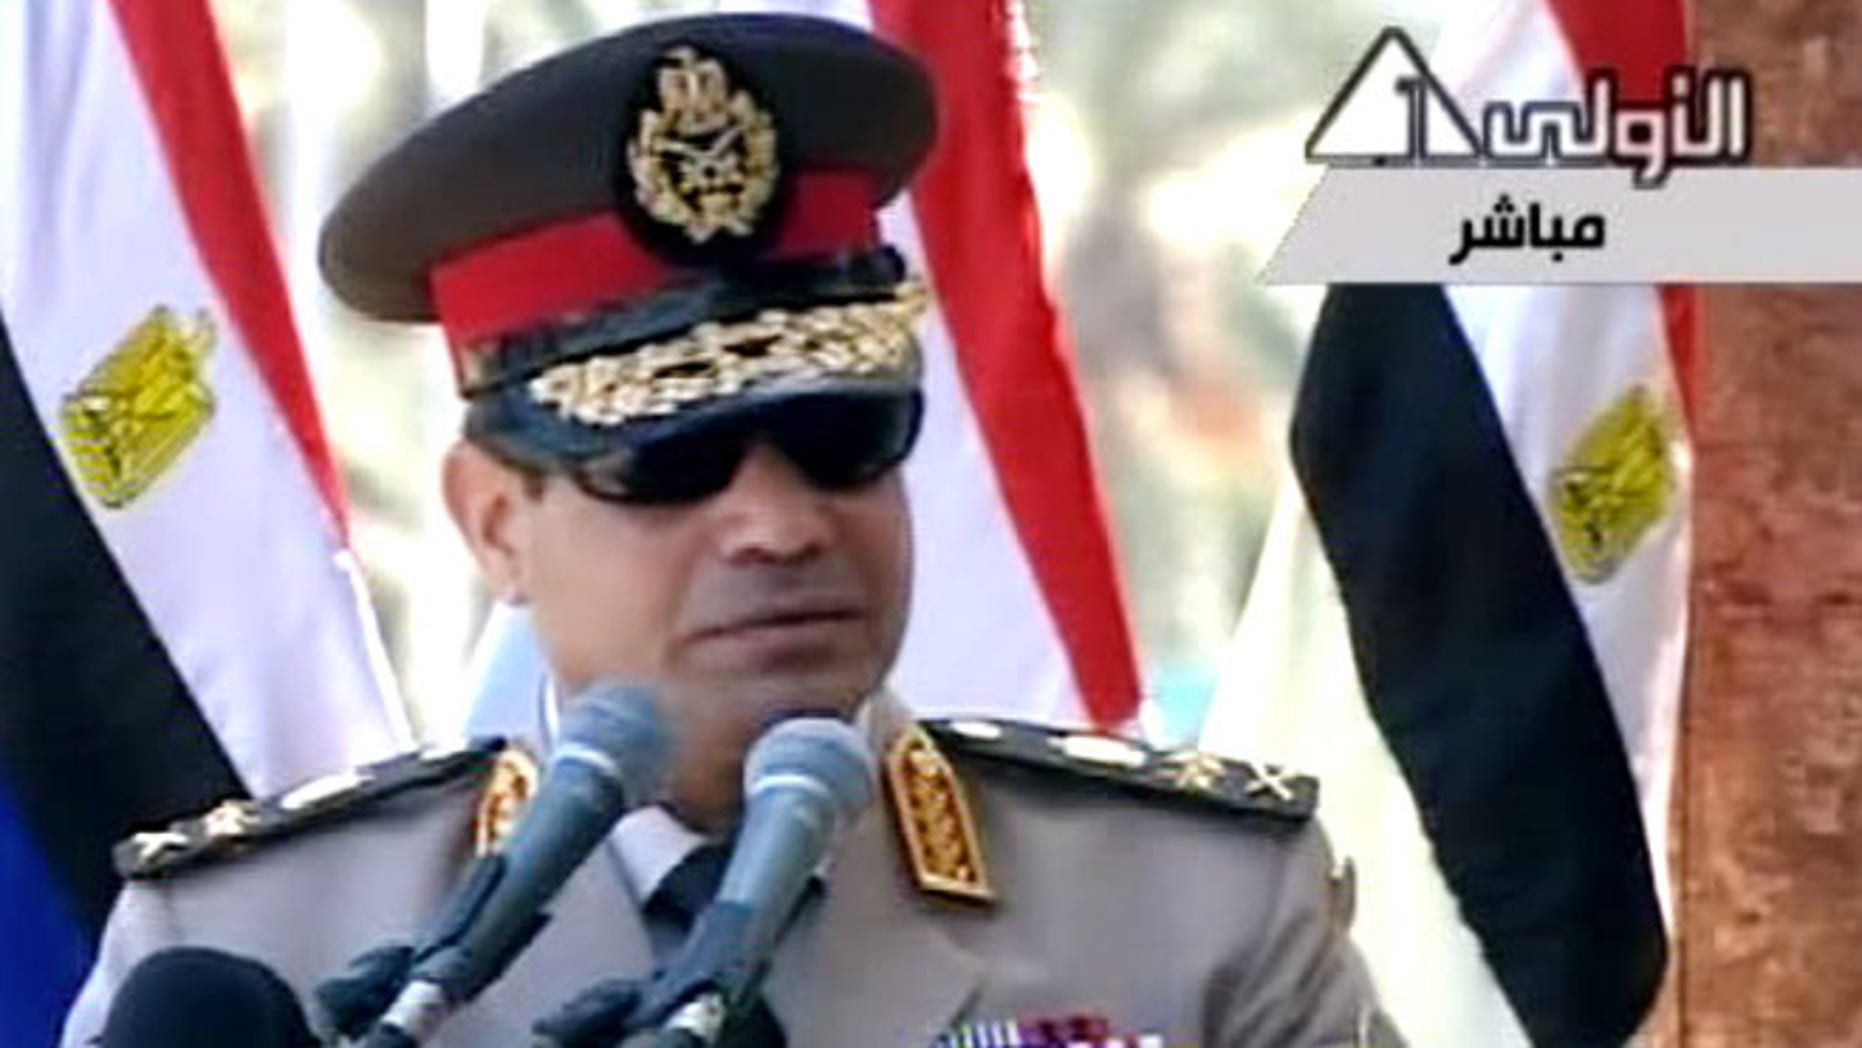 July 24, 2013: In this image taken from Egypt State TV, Egyptian Defense Minister Gen. Abdel-Fattah el-Sissi delivers a speech in Cairo, Egypt.